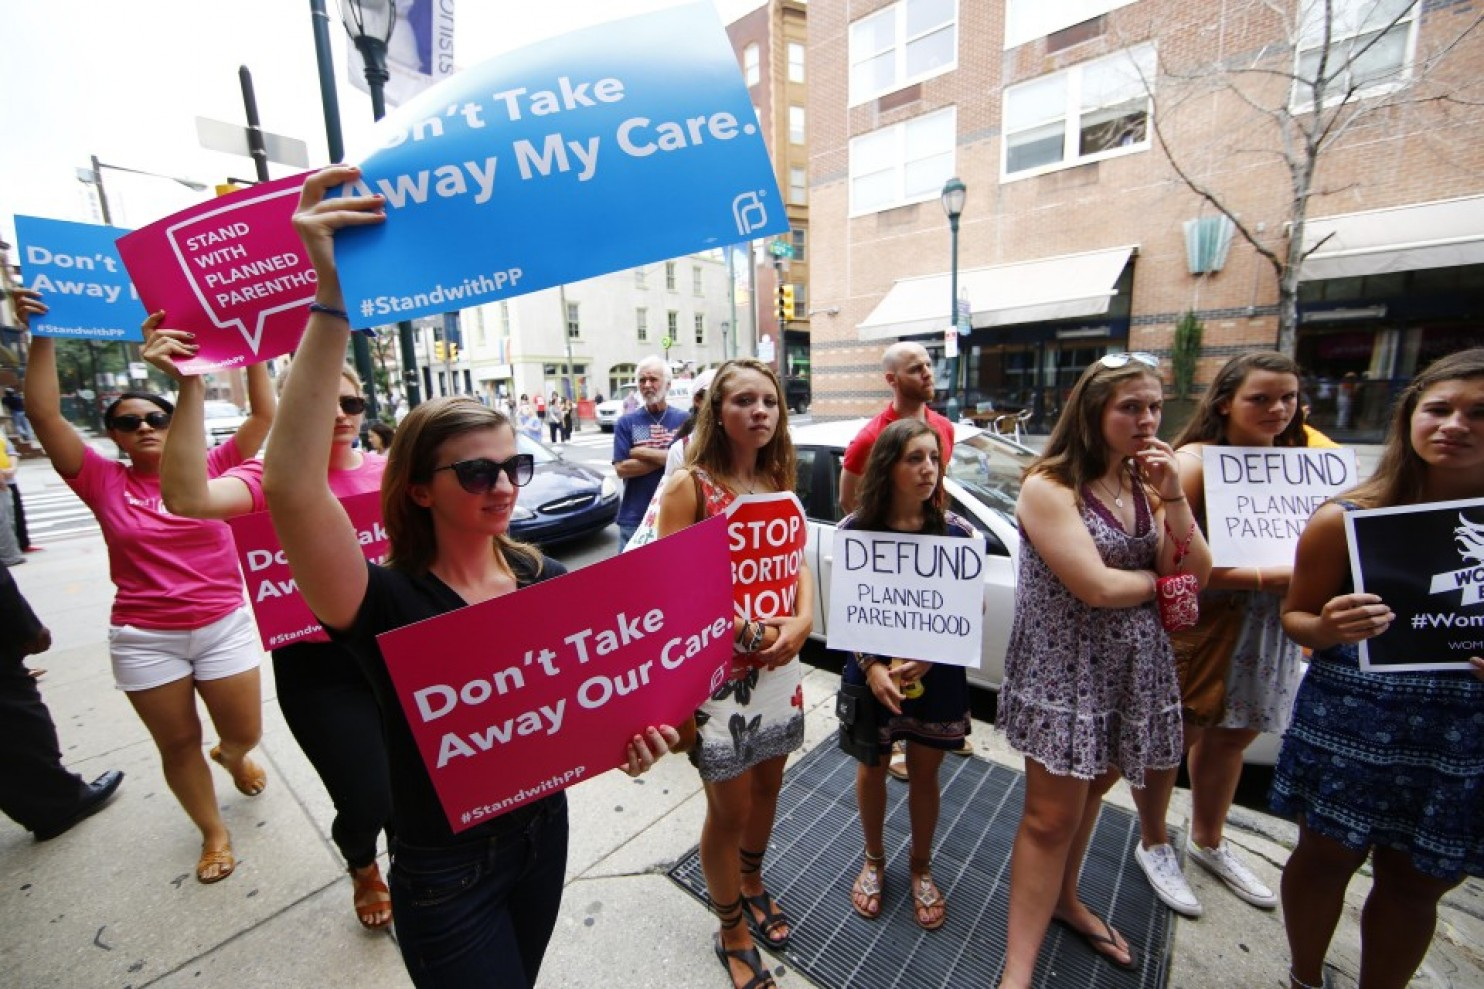 6 facts about abortions that everyone needs to know, since clearly there's still some confusion